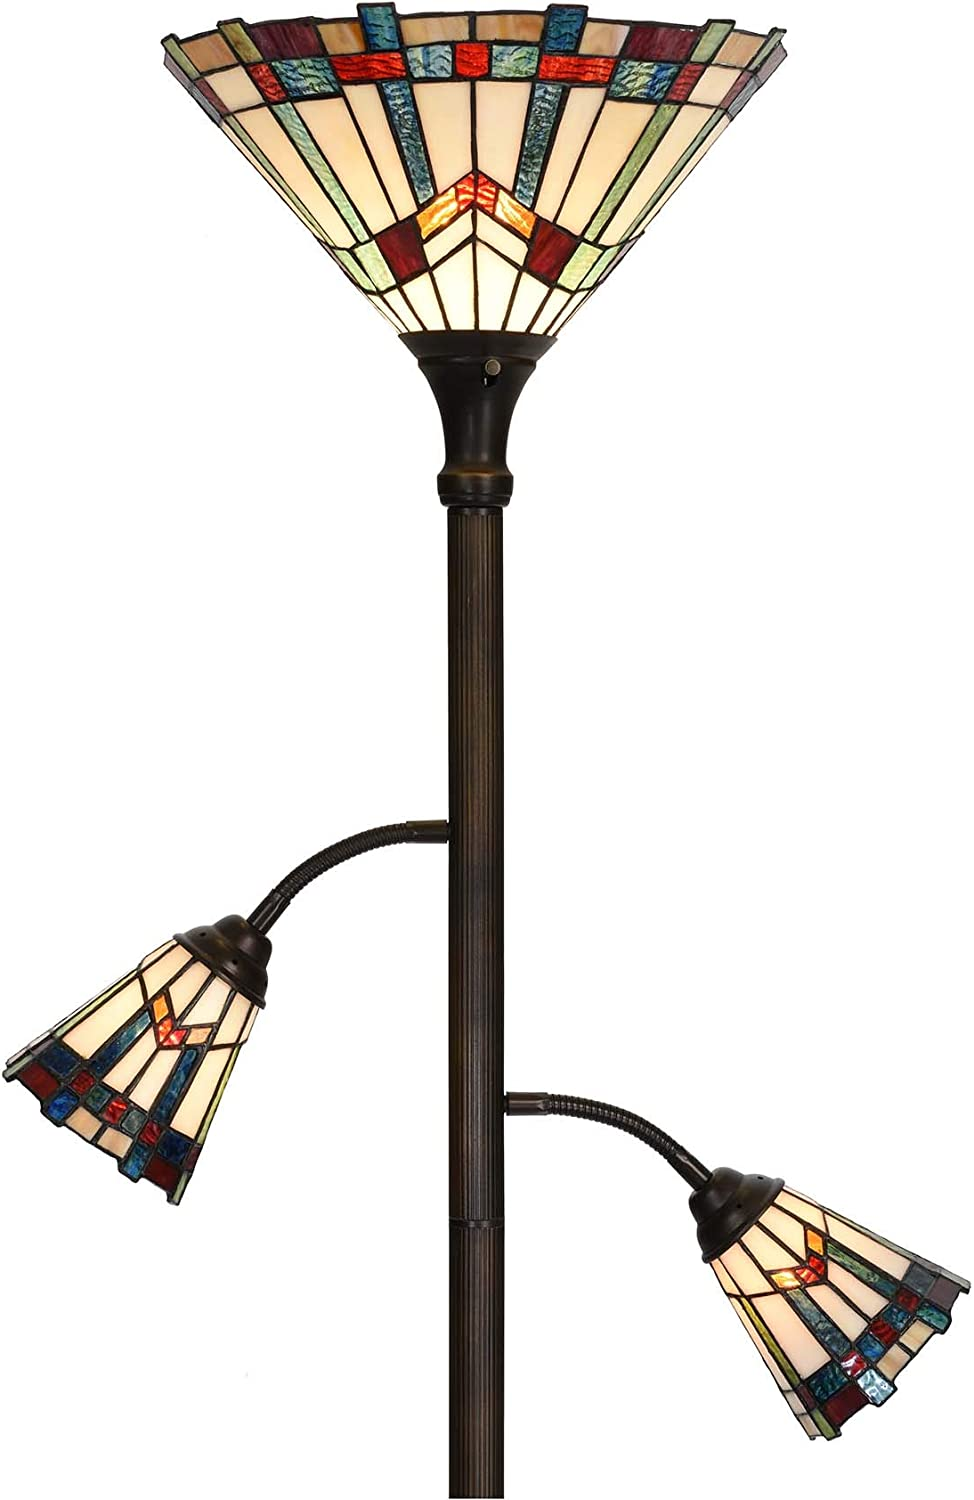 Bieye L10812 Mission Tiffany Style Stained Glass Floor Lamp for Reading Working Decorating, 3-Lights, 70 inches Tall